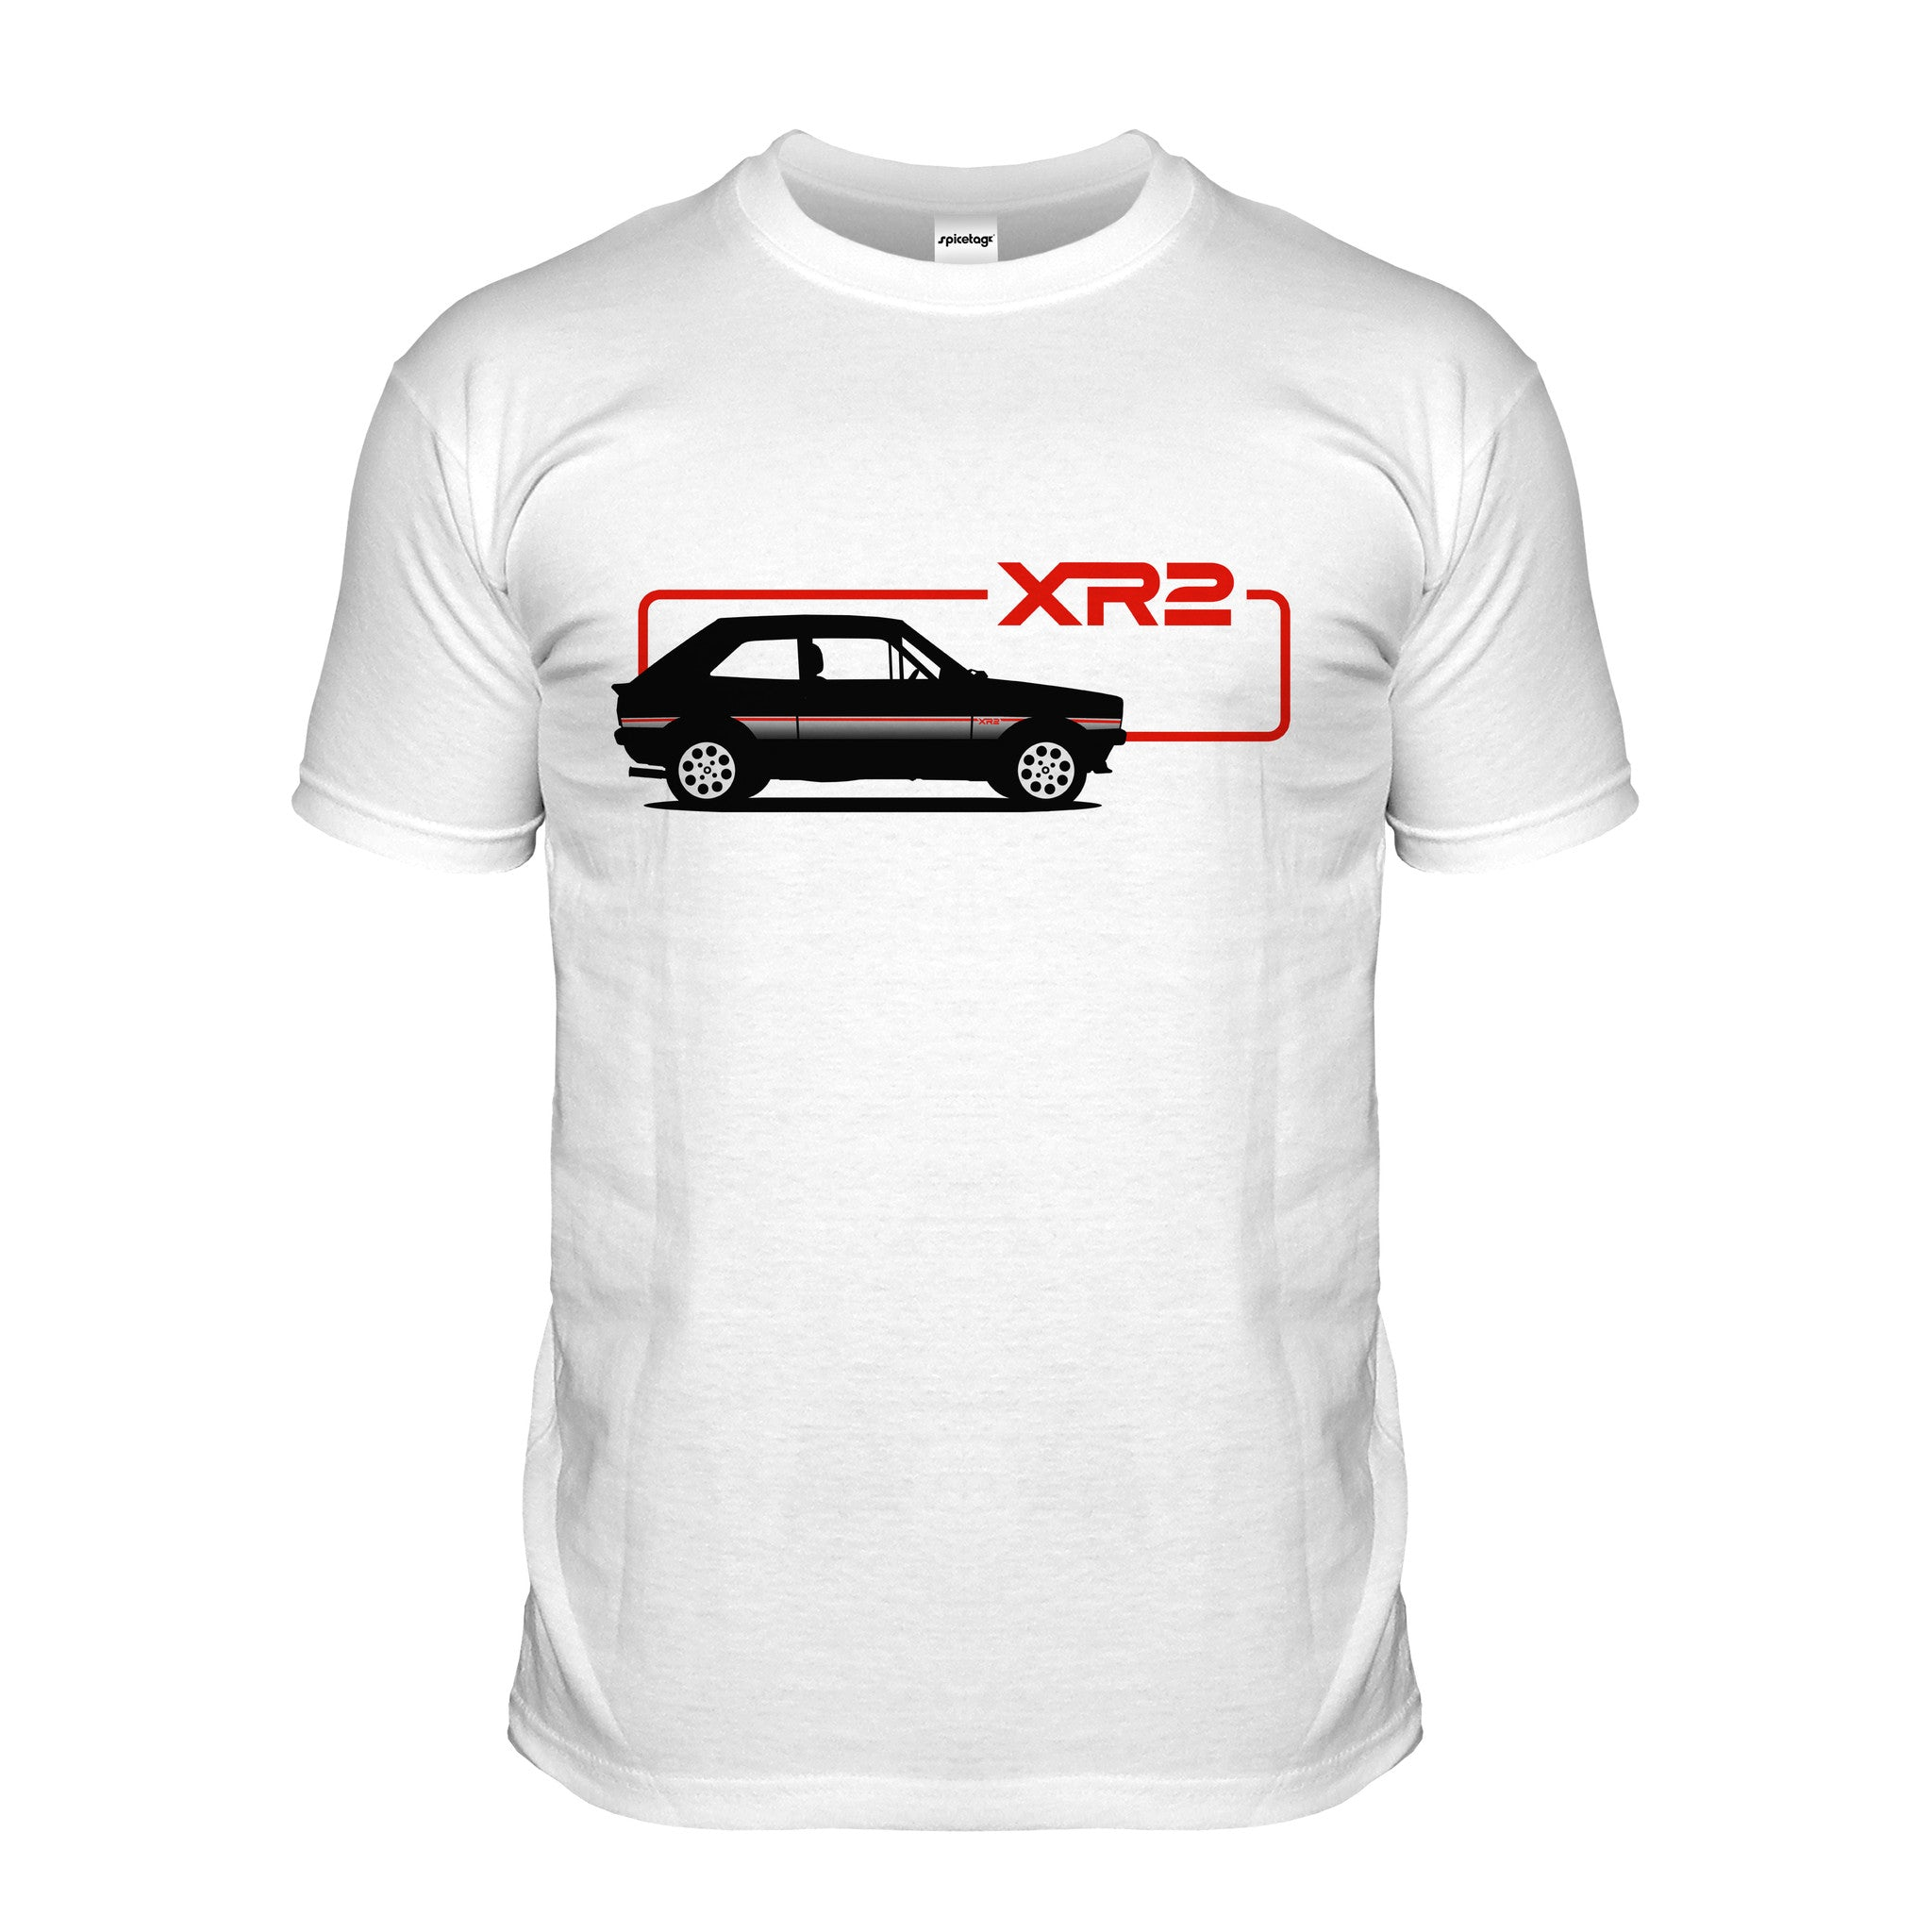 XR2 Black T-shirt